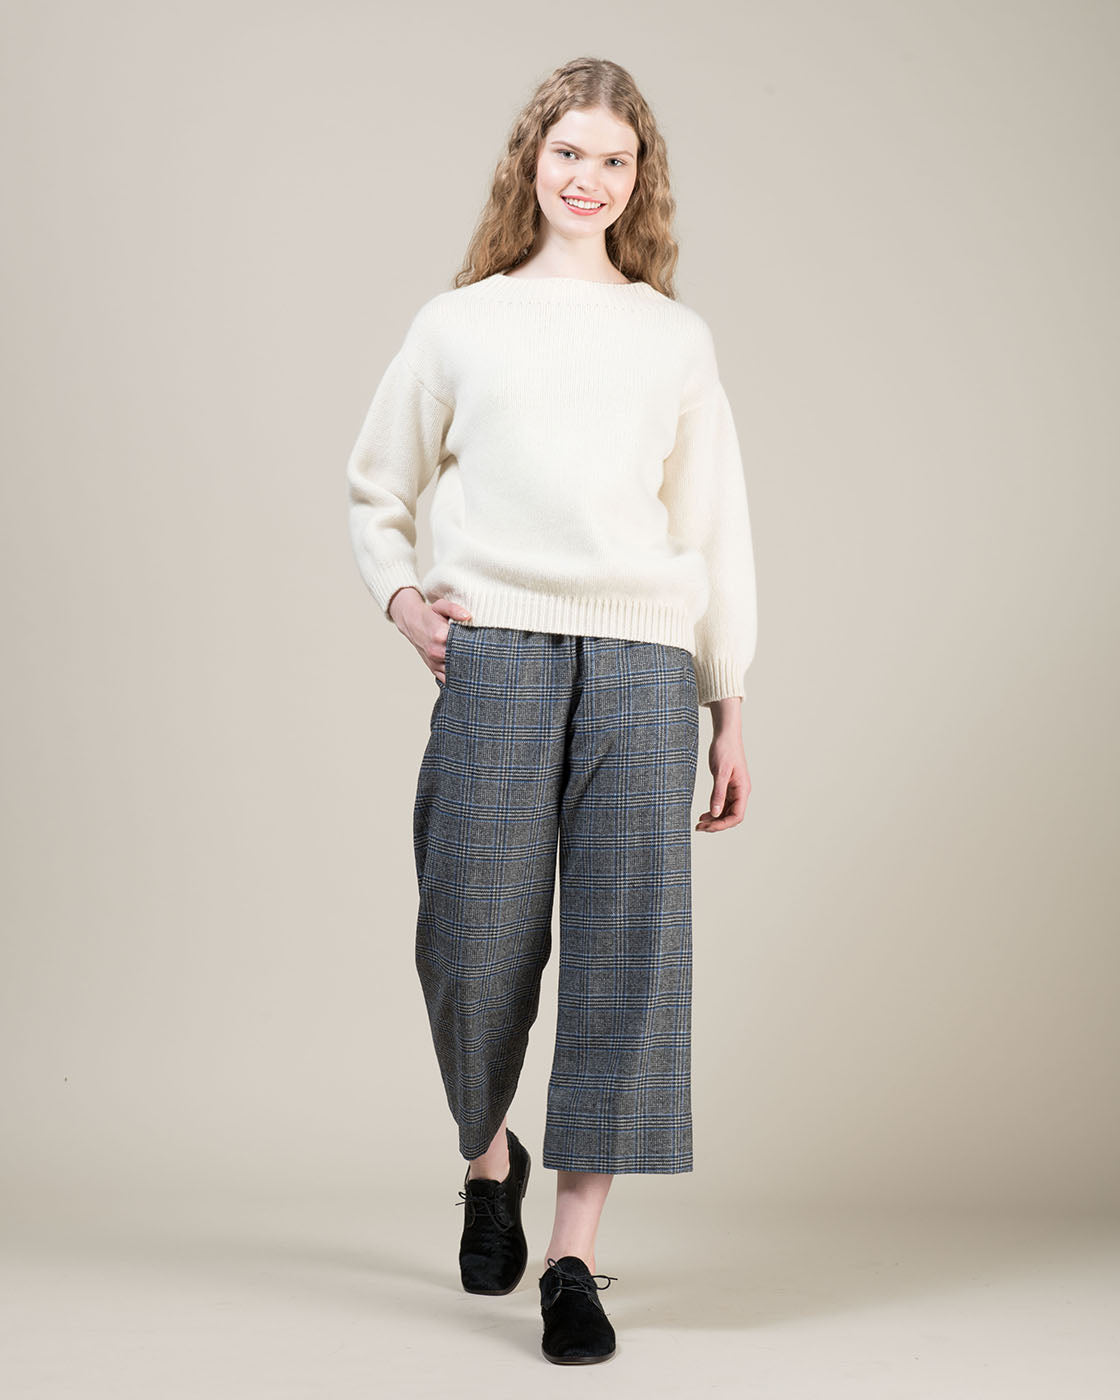 True nyc: Women's Collection of Jeans, Pants, T-Shirts, Sweaters